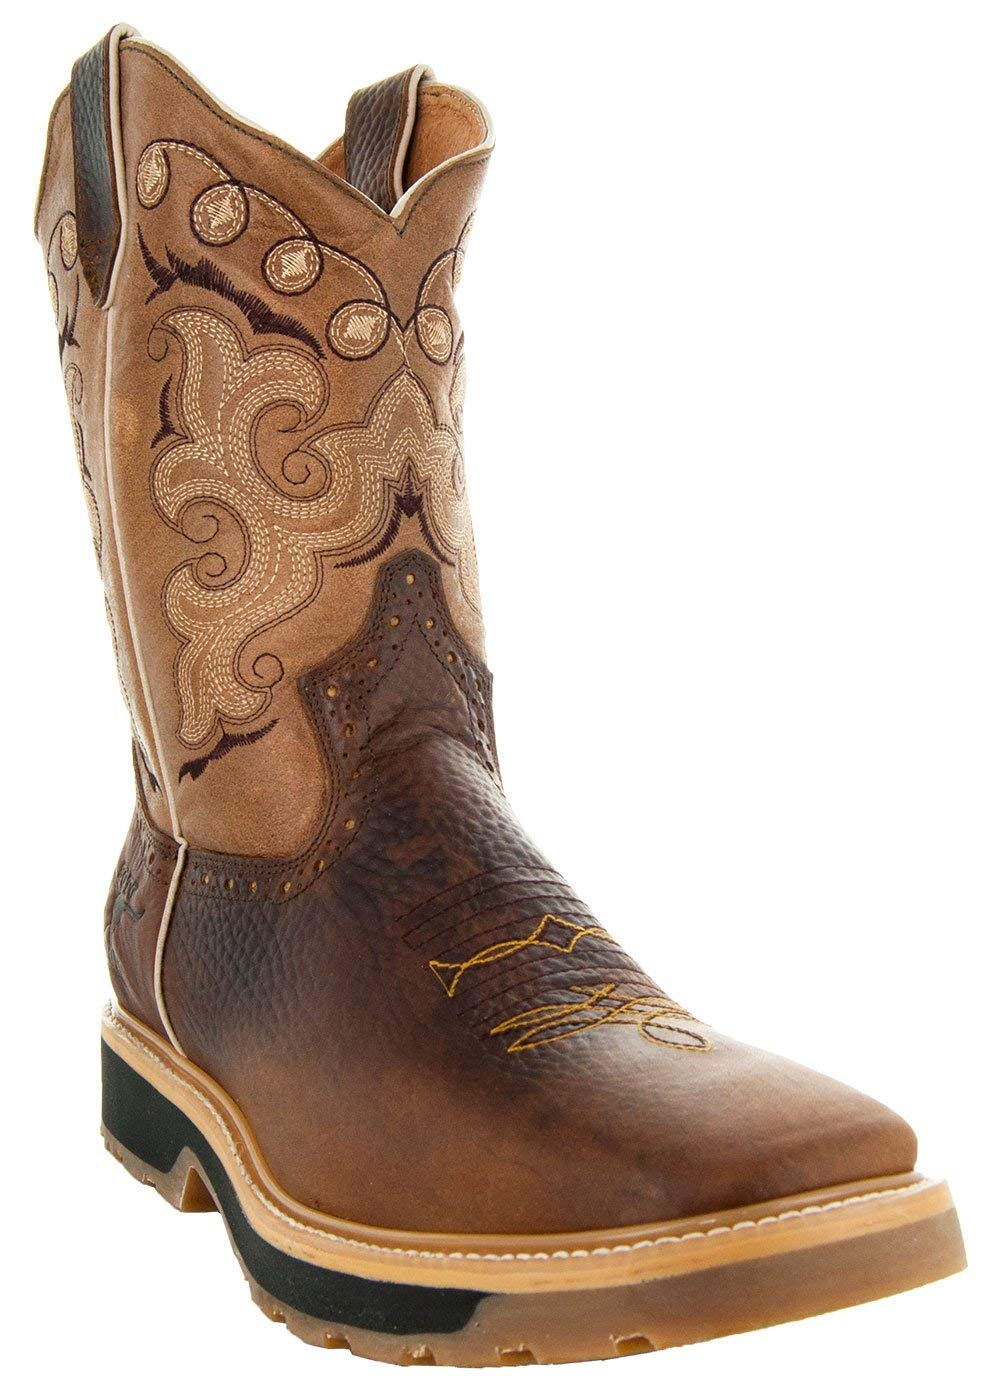 Soto Boots Men's Square Toe Work Boots H6002